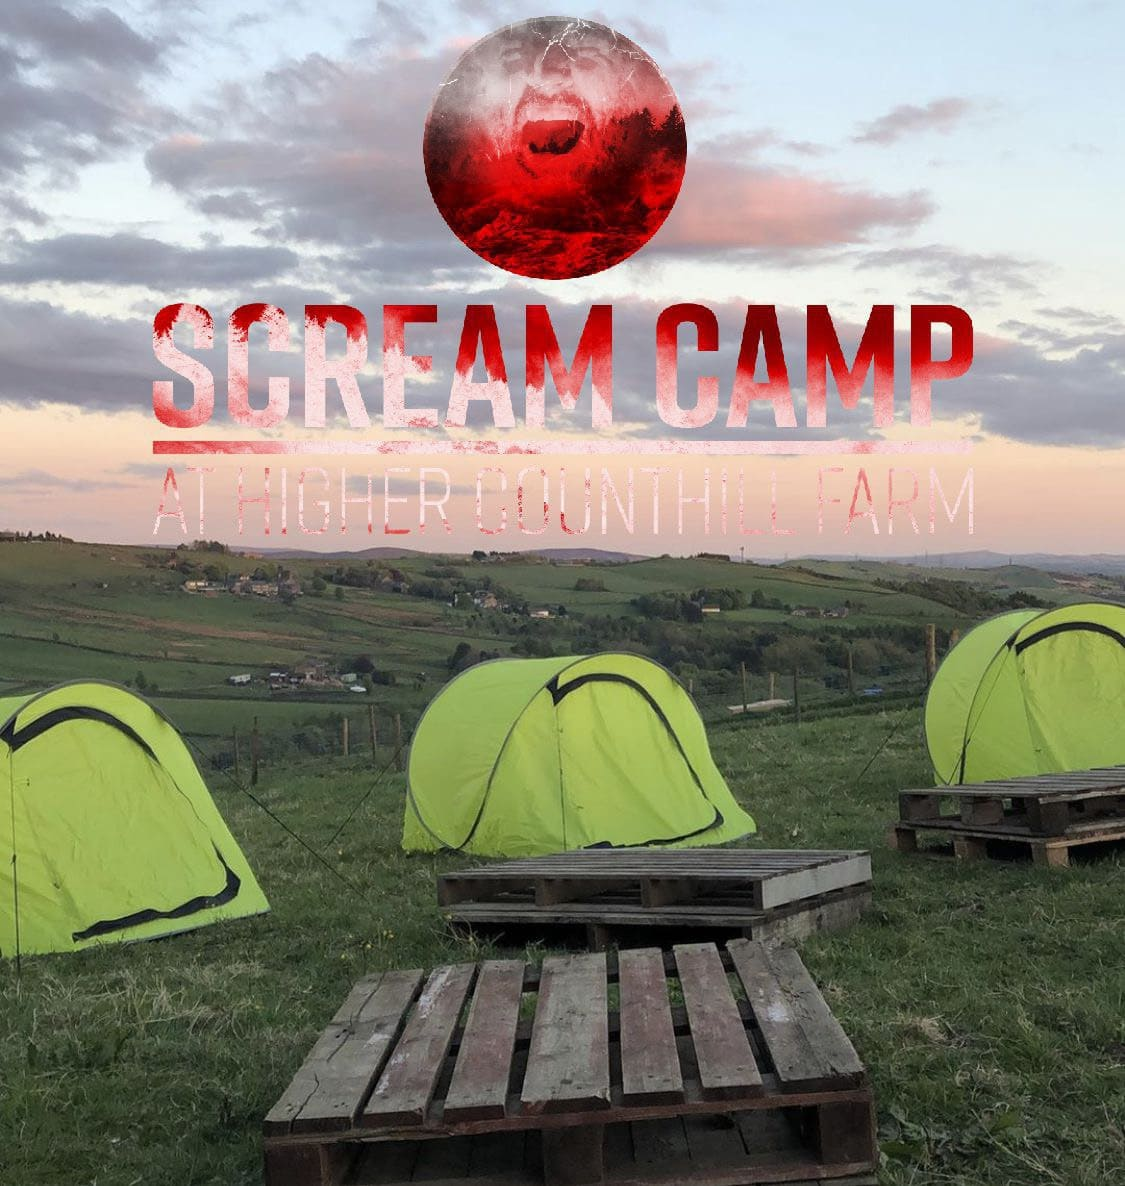 scream camp UK horror campout overnight full contact